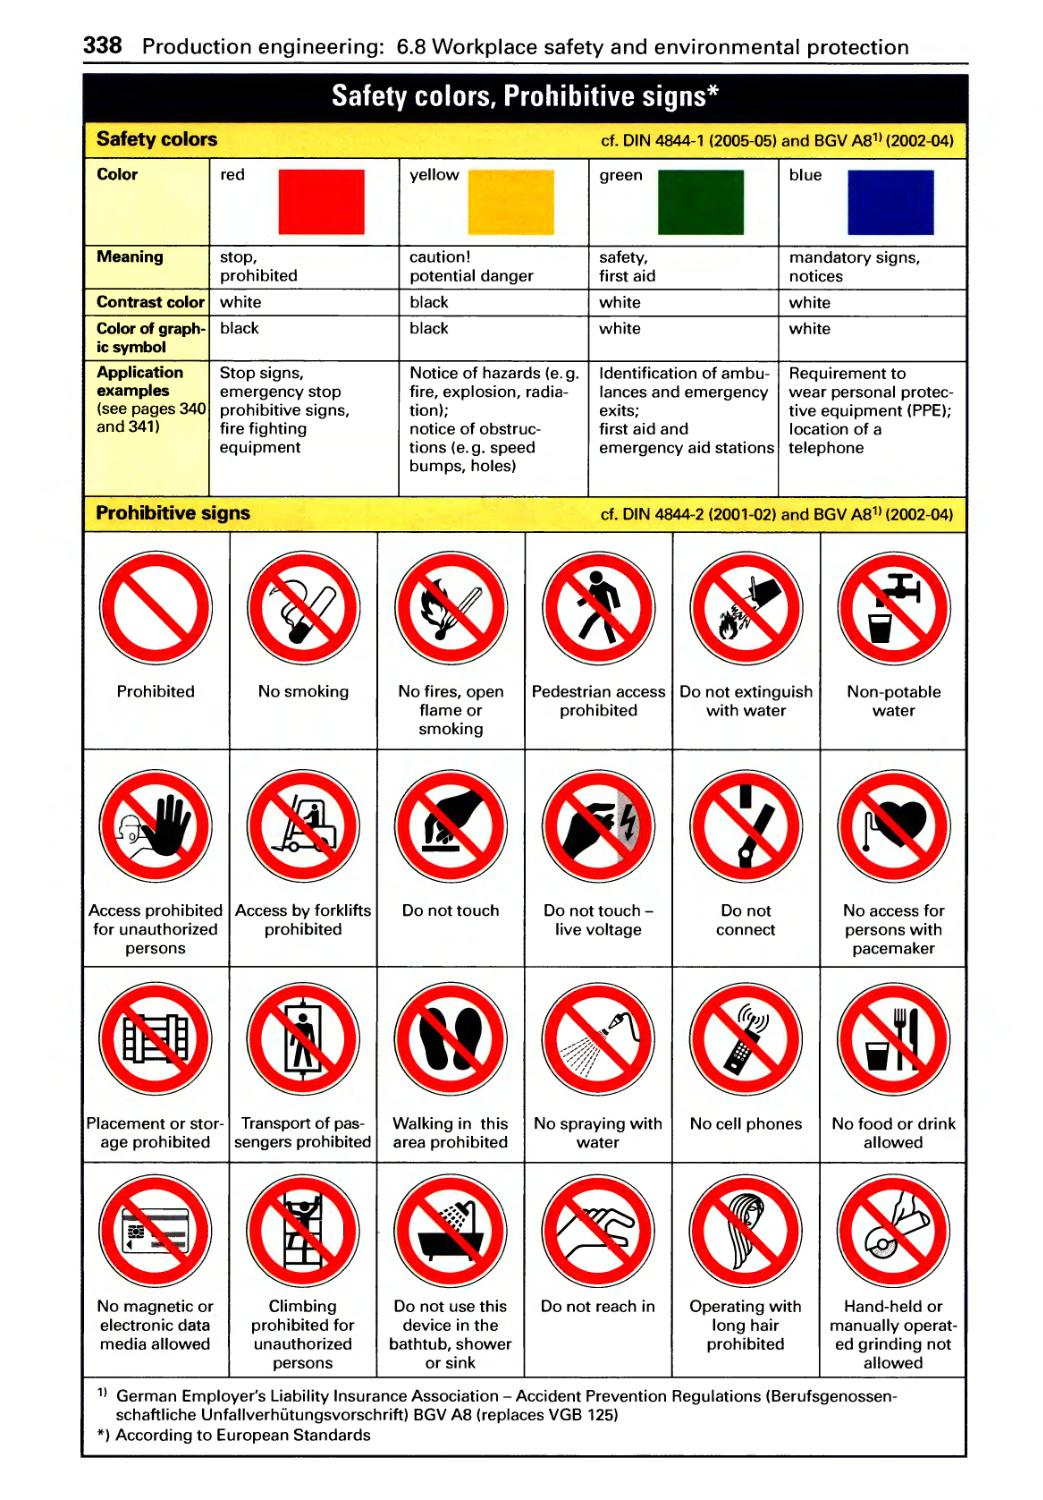 Workplace Safety and Environmental Protection